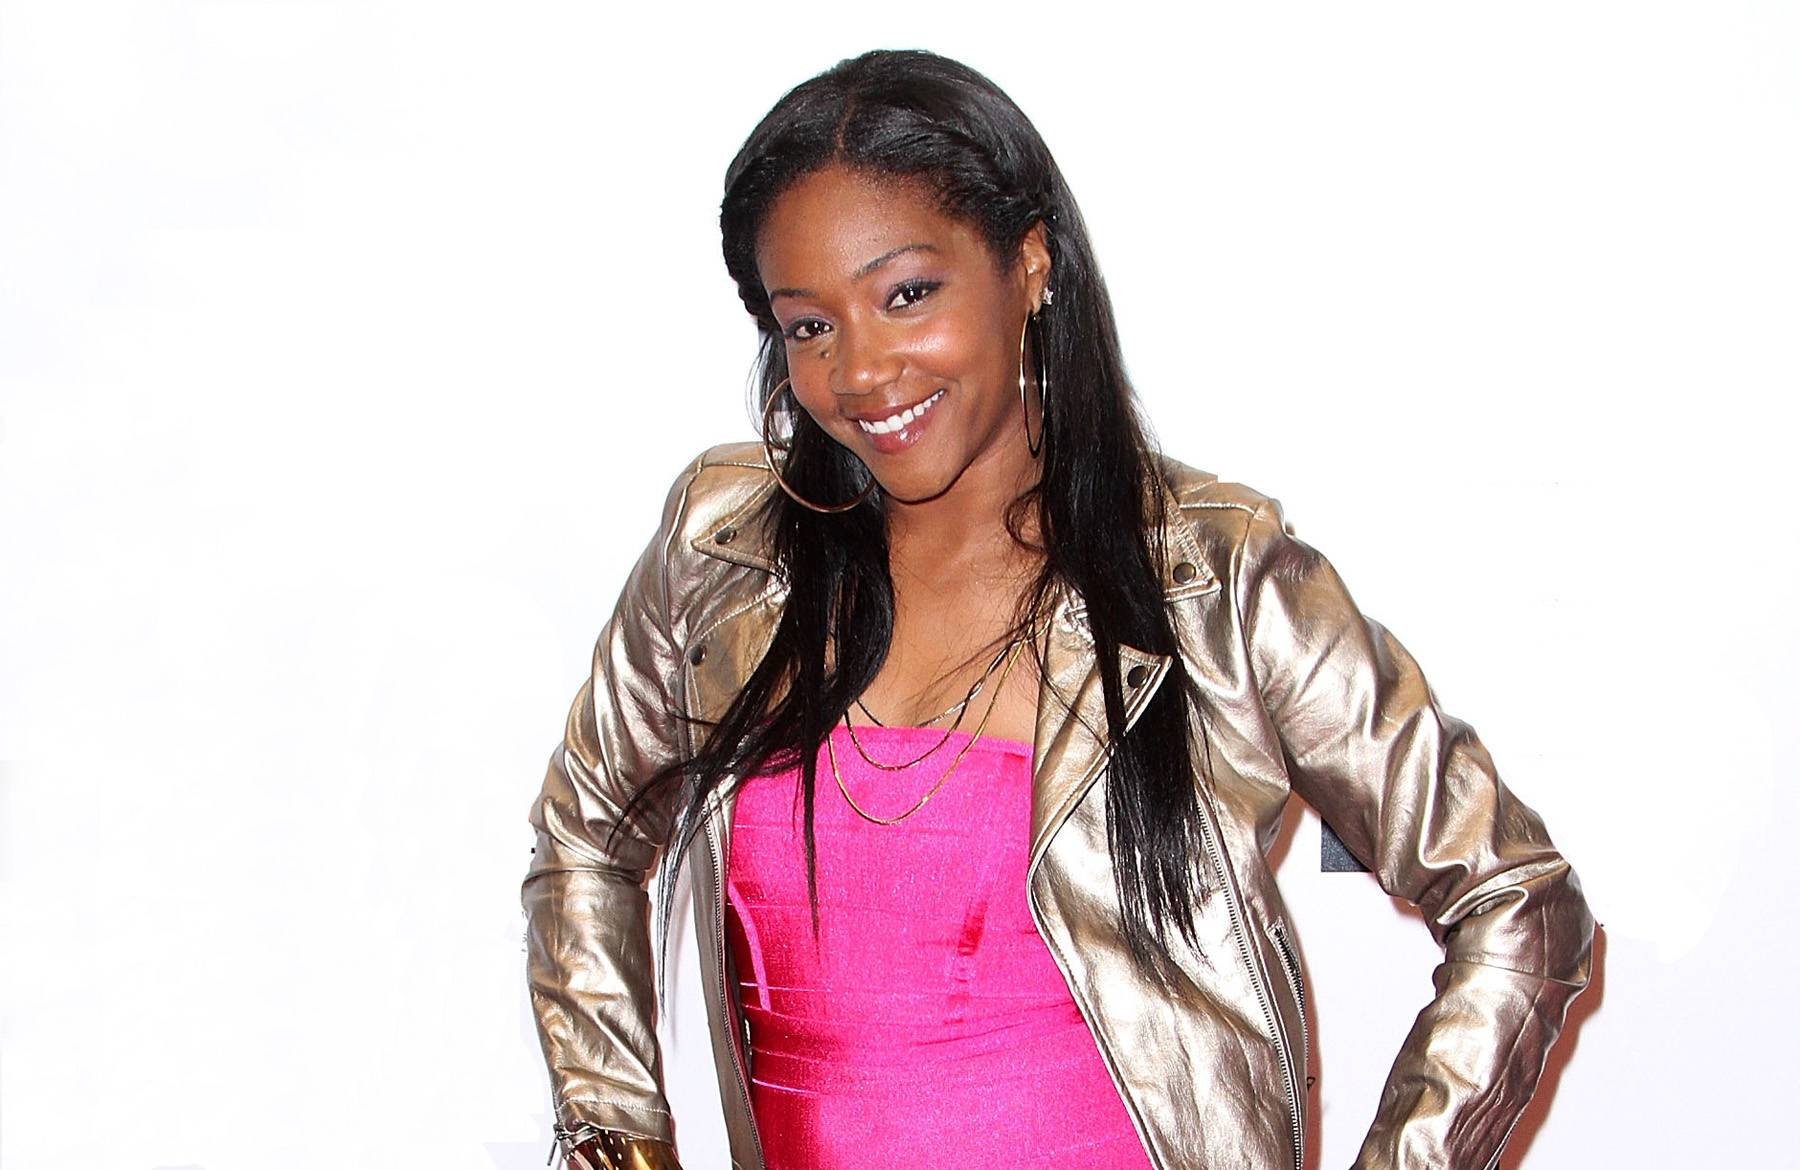 Ready for Tiffany? - Tiffany Haddish may very well be one of comedy's best kept secrets. She's done everything ? stand-up, comedy writing and even had a few roles in some TV shows here and there. Check out how she's managed to master the art of funny. (Photo: Maury Phillips/Getty Images for BET)